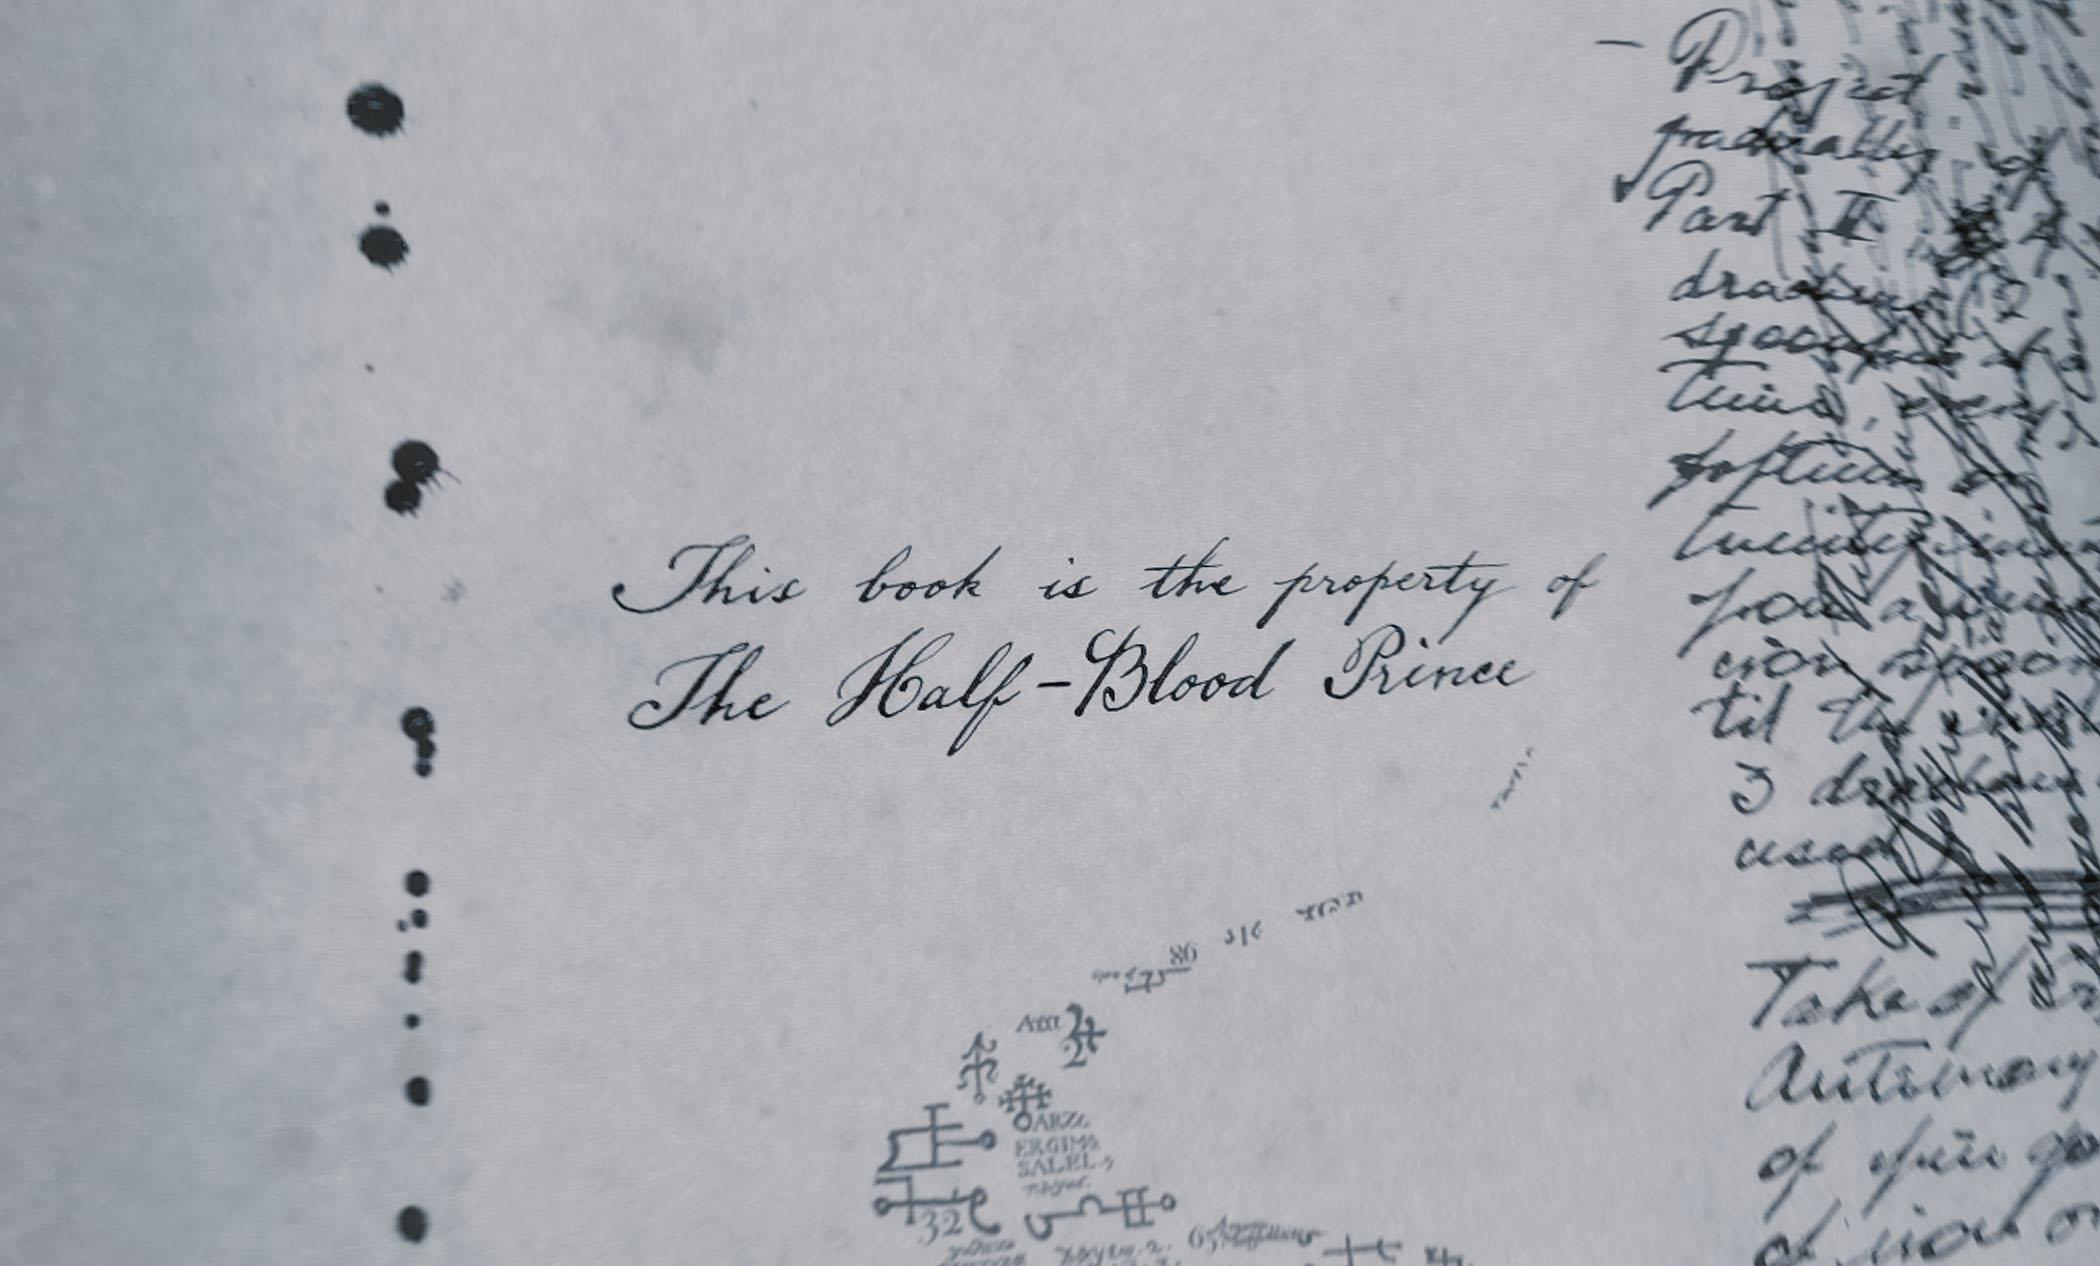 Front page of the Half-Blood Prince's book